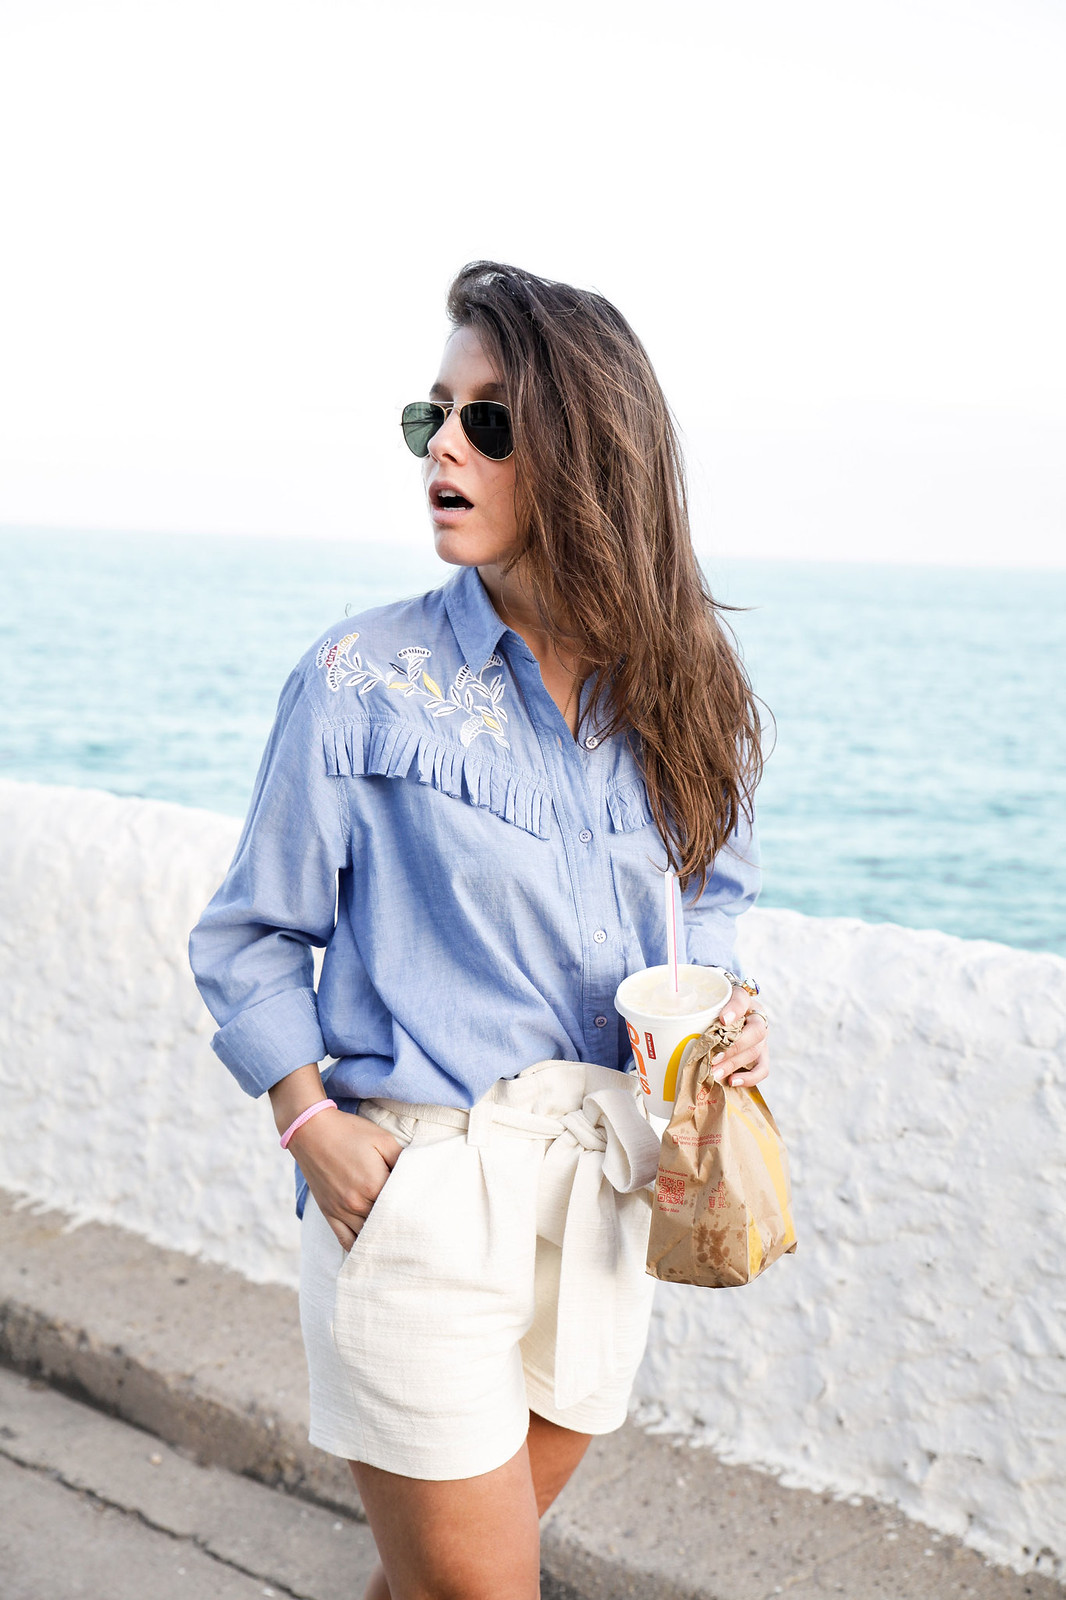 06_camisa_flecos_azul_mysundaymorning_fringed_shirt_fringed_theguestgirl_influencer_inspo_outft_summer_laura_santolaria_public_desire_denim_shoes_mc_donalds